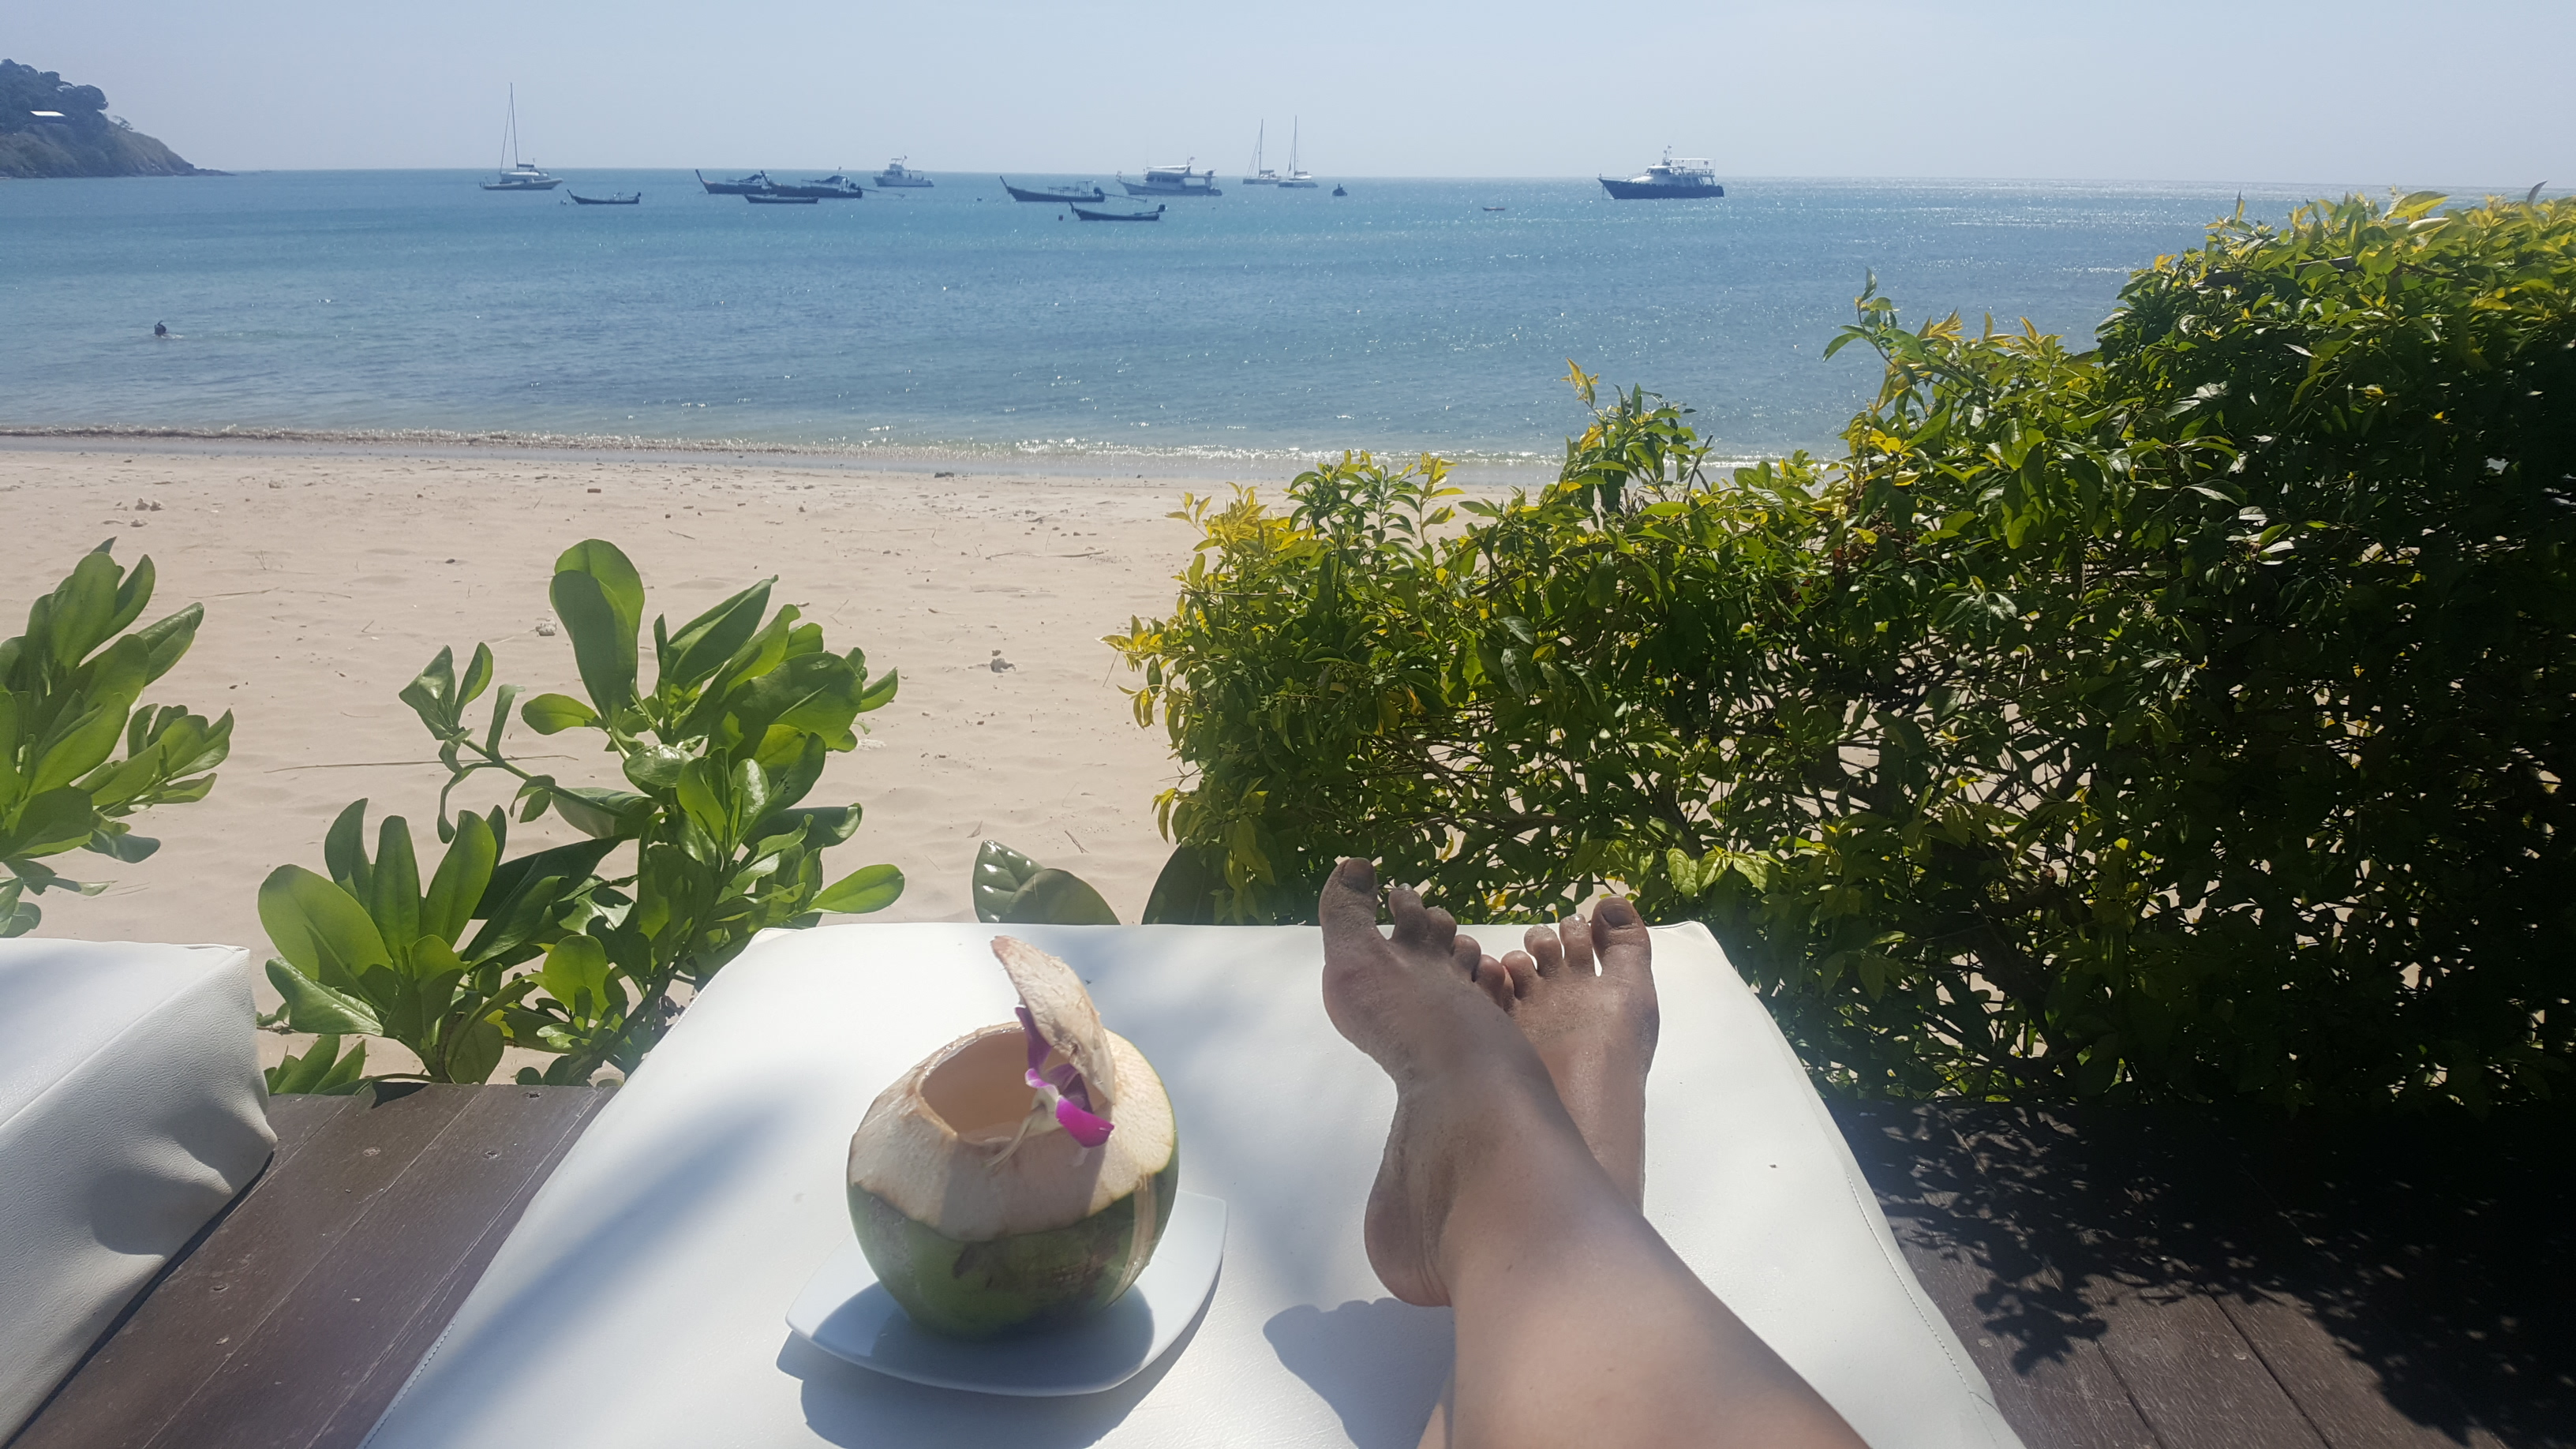 My suntanned feet on a sunlounger with a fresh coconut shell next to me, decorated with a flower. Green tropical shrubs, a sandy beach and blue water dotted with longtail boats are in the background